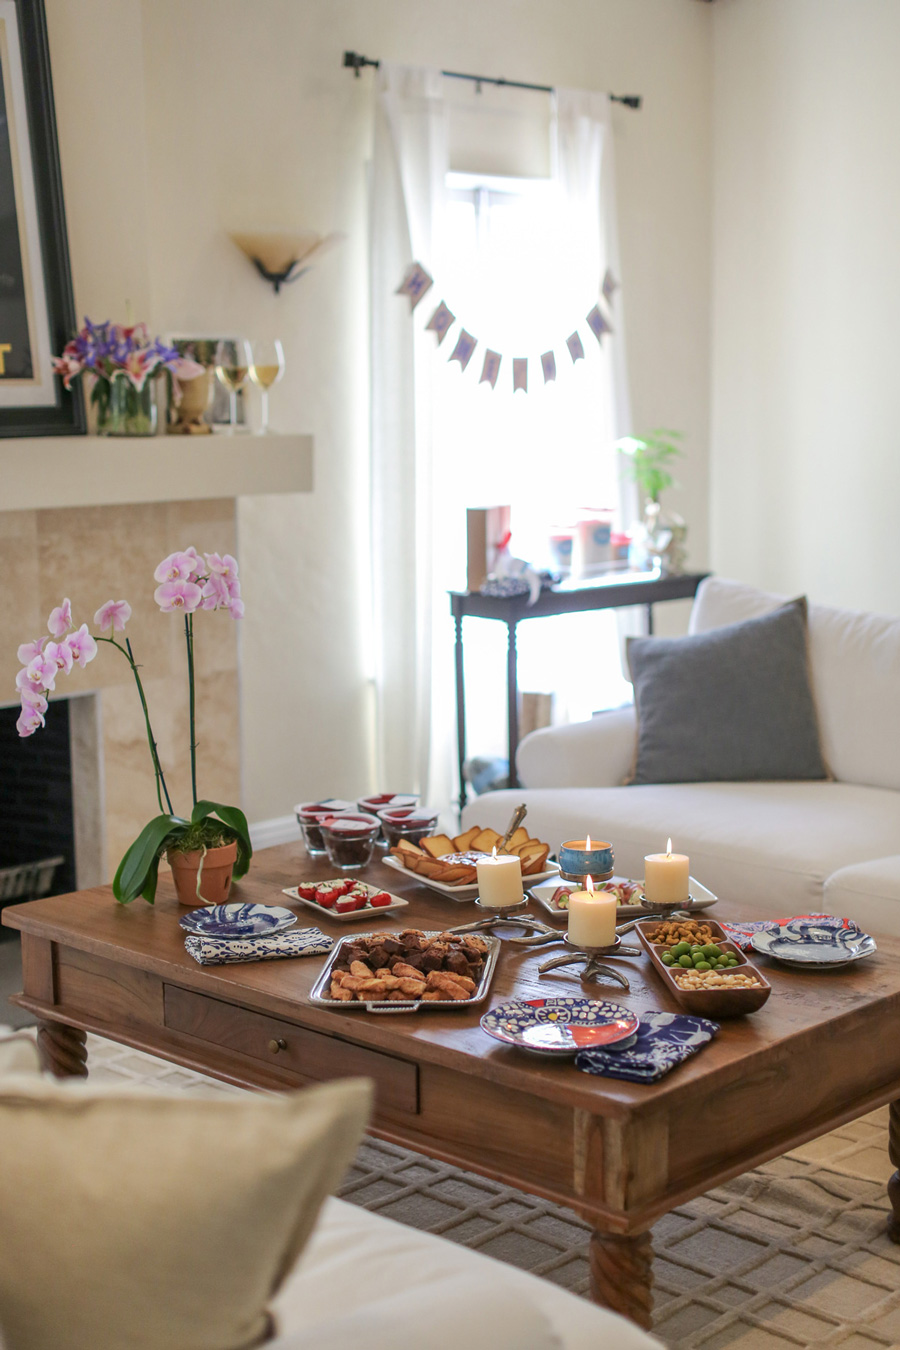 How To Throw A Great Housewarming Party!